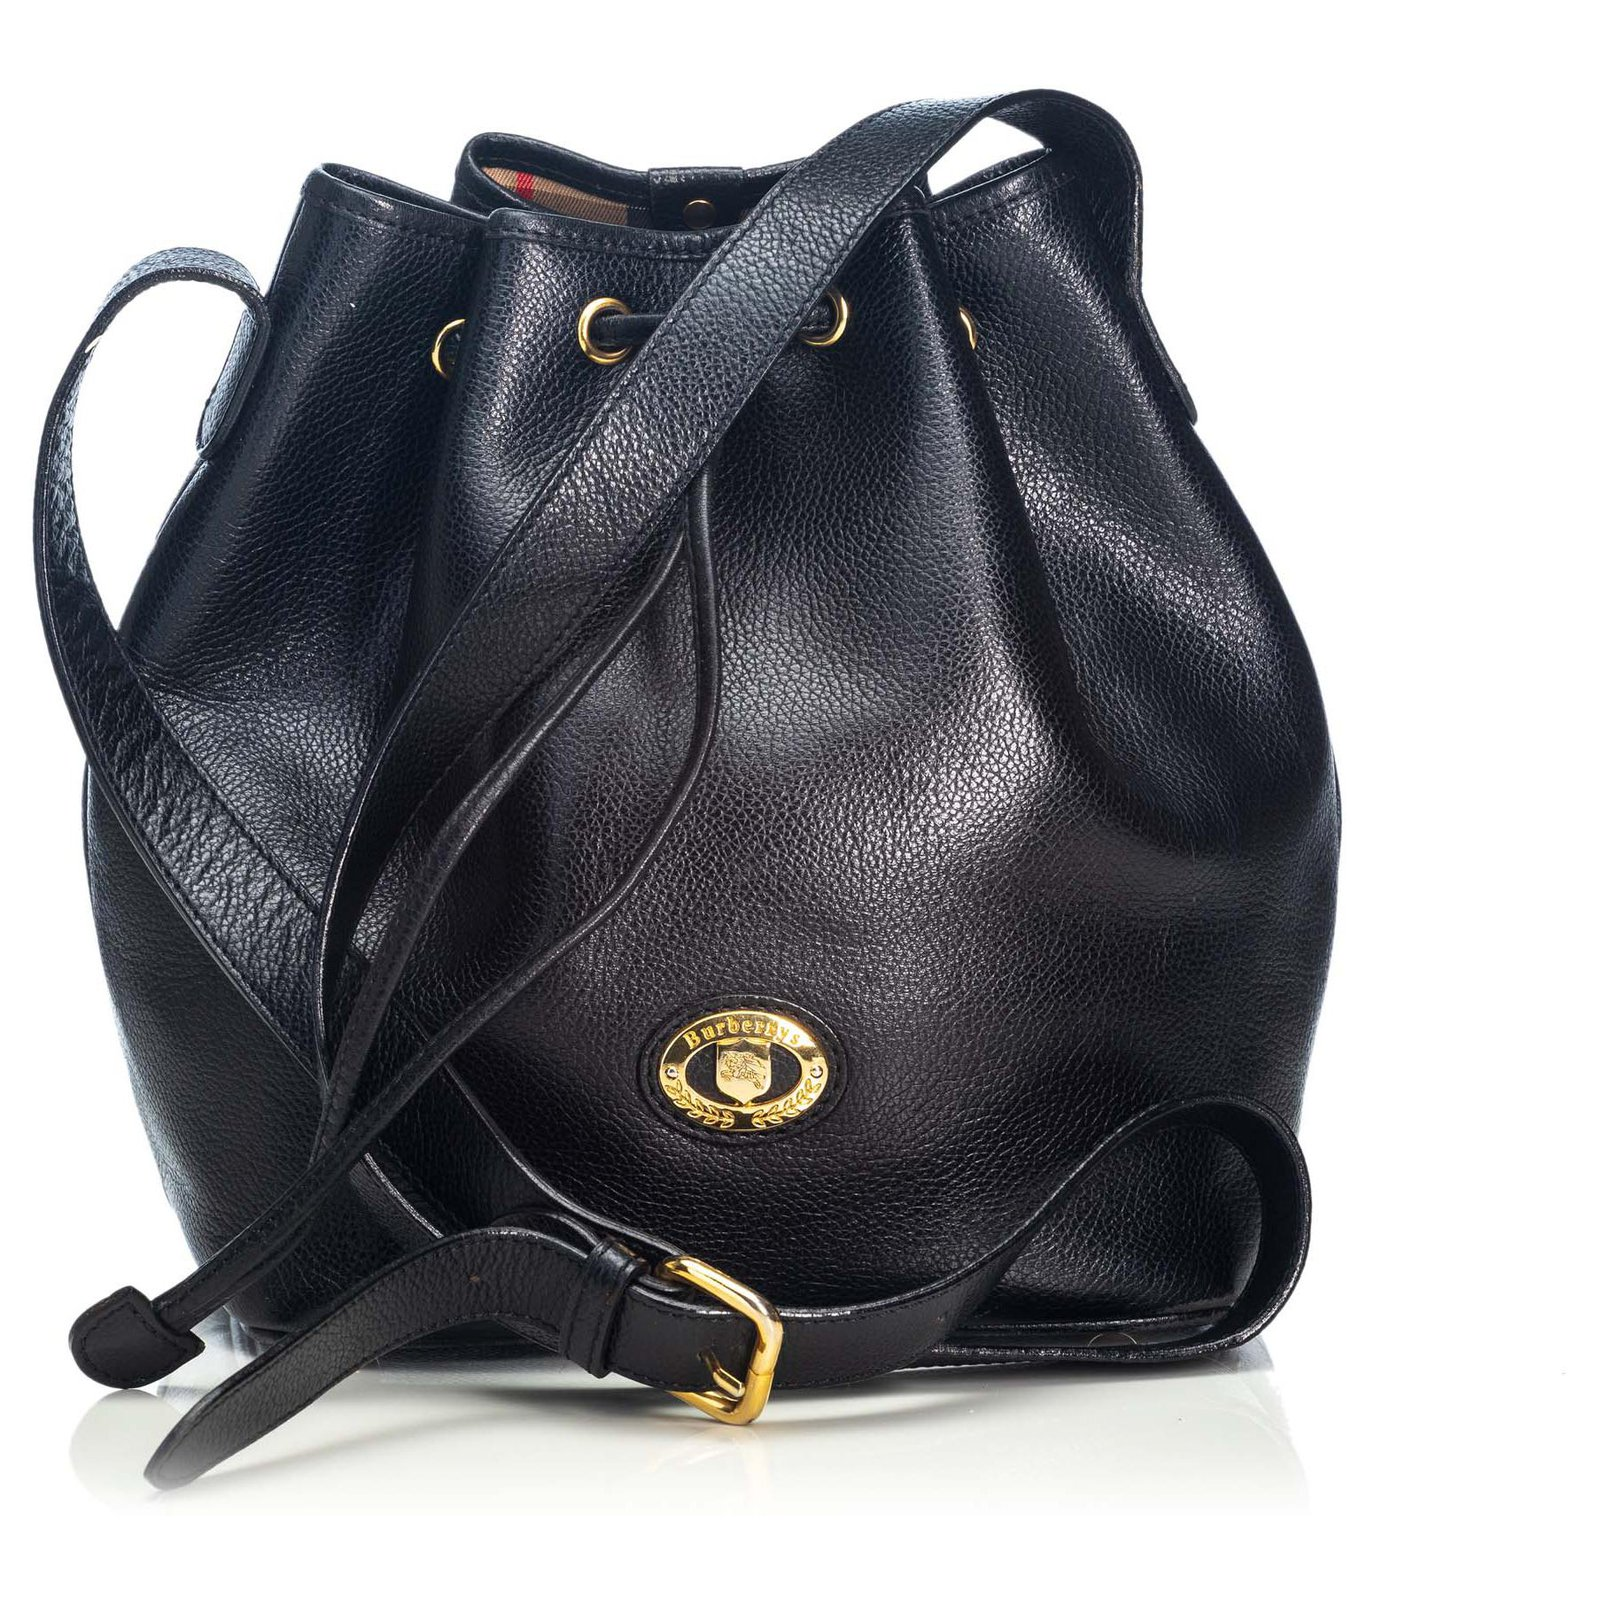 f2e8ab39a Burberry Burberry Black Leather Bucket Bag Handbags Leather,Other Black  ref.123957